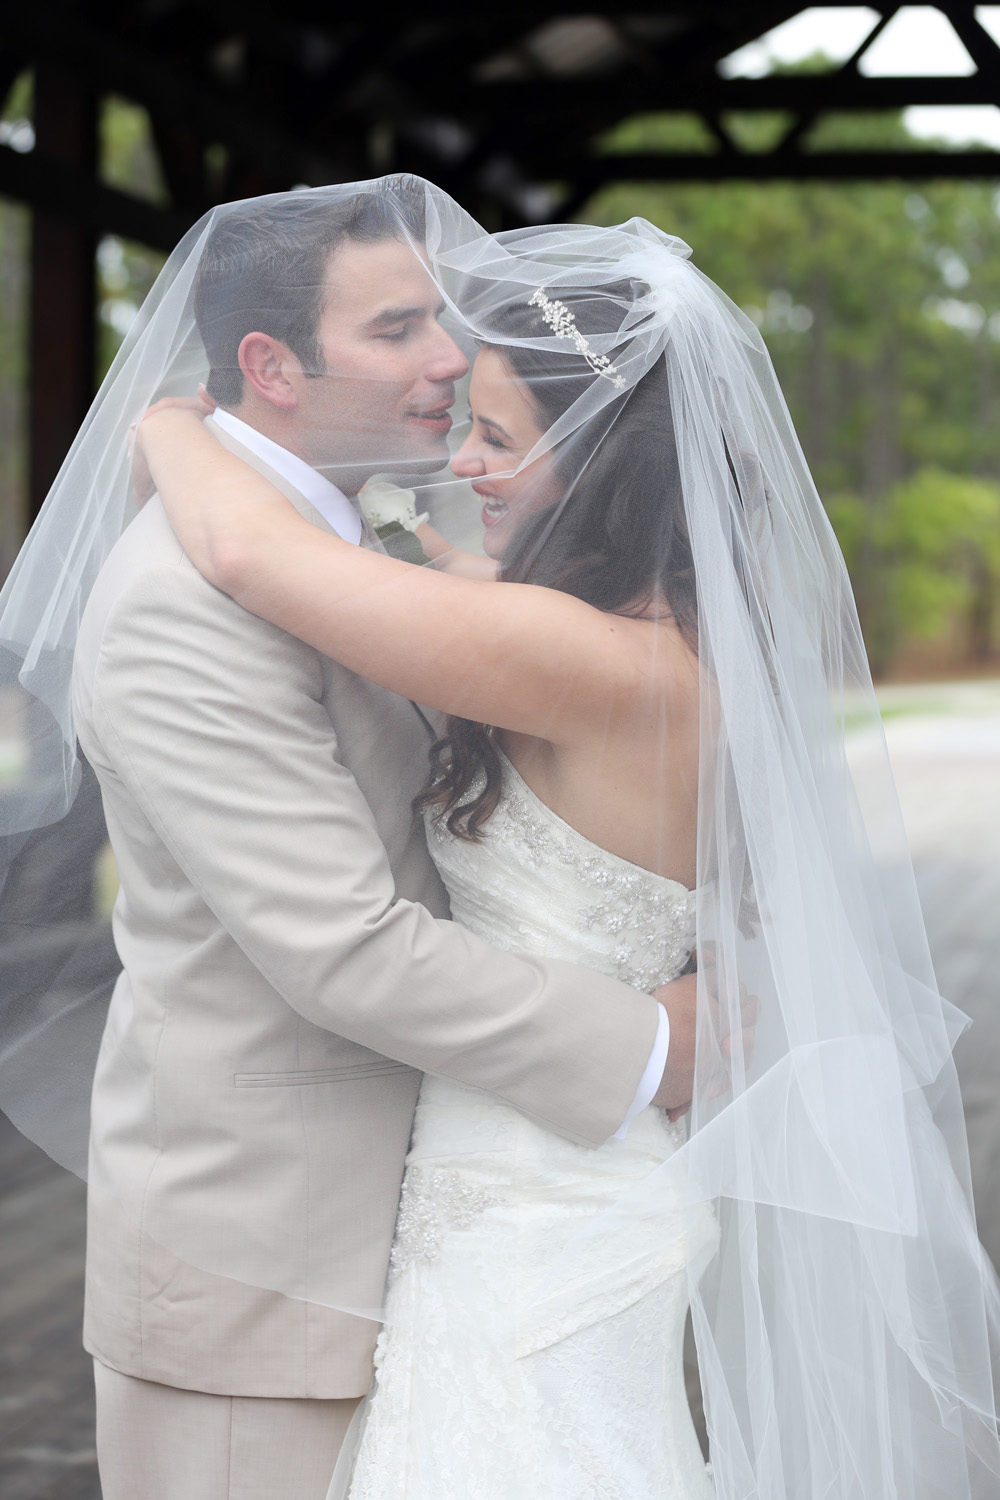 St_James_Plantation_Wedding_Tiffany_Abruzzo_Photography_blog14.jpg